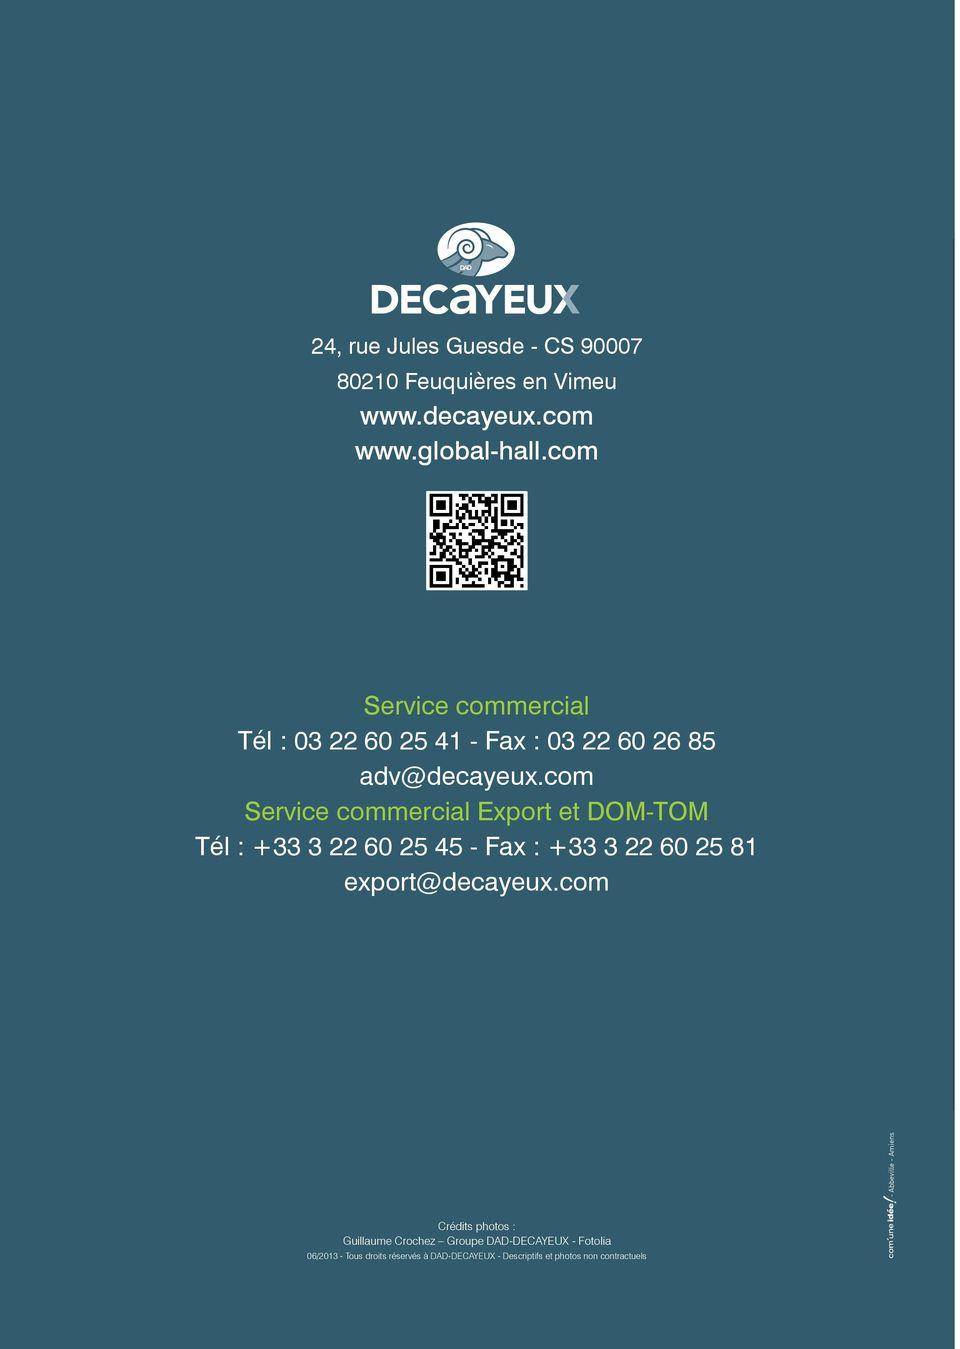 com Service commercial Export et DOM-TOM Tél : +33 3 22 60 25 45 - Fax : +33 3 22 60 25 81 export@decayeux.